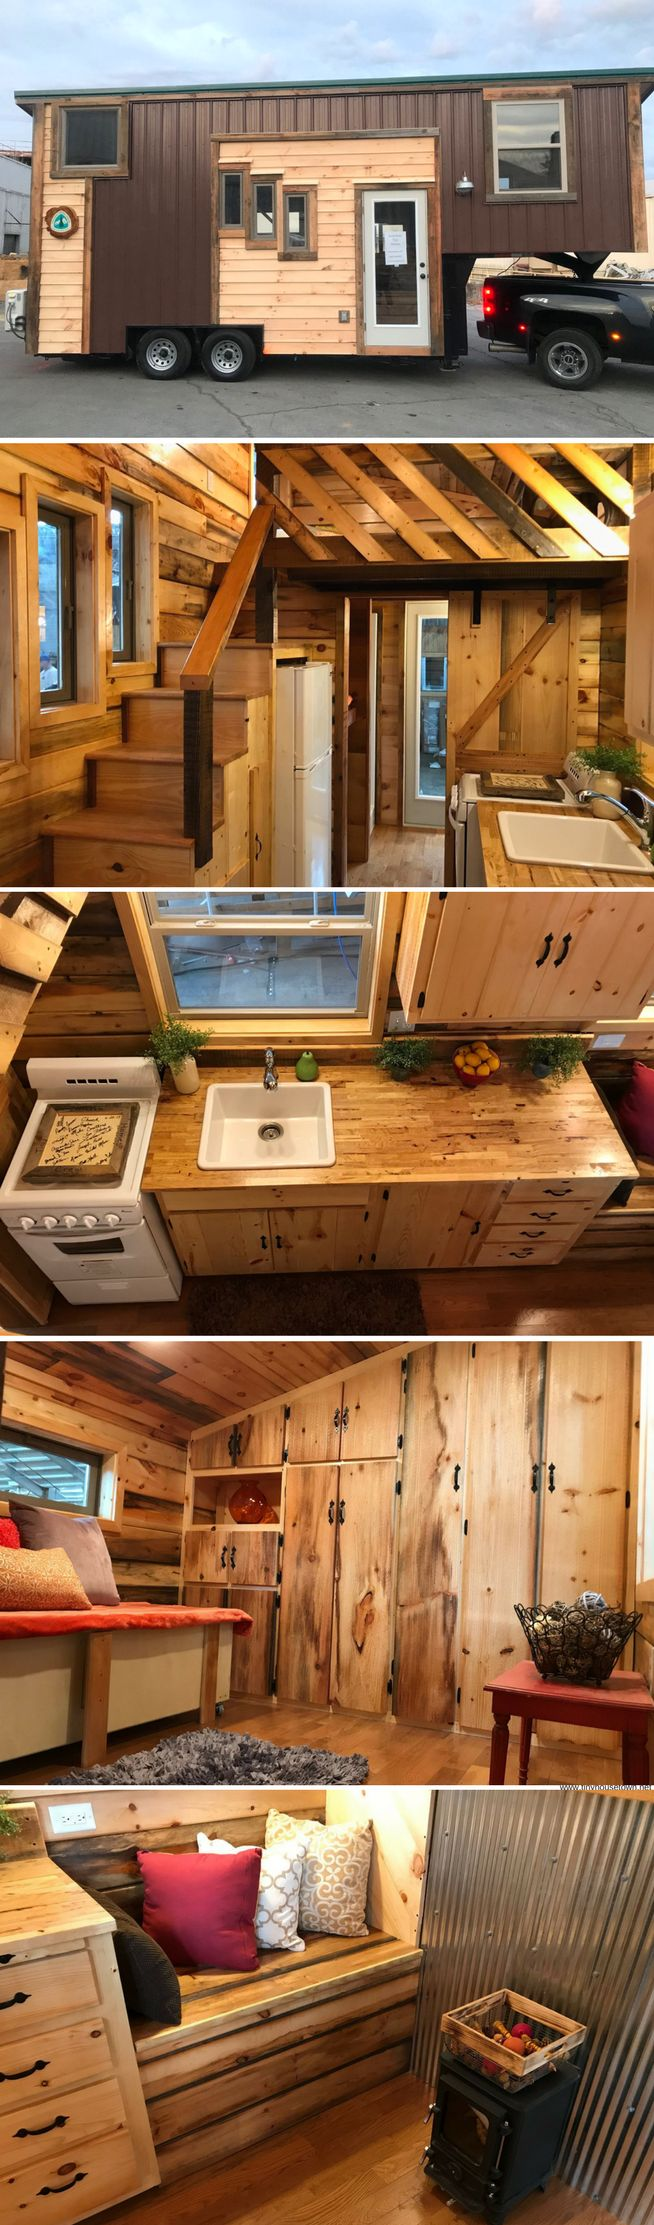 Tiny Home Designs: 3293 Best Small House Ideas Images On Pinterest